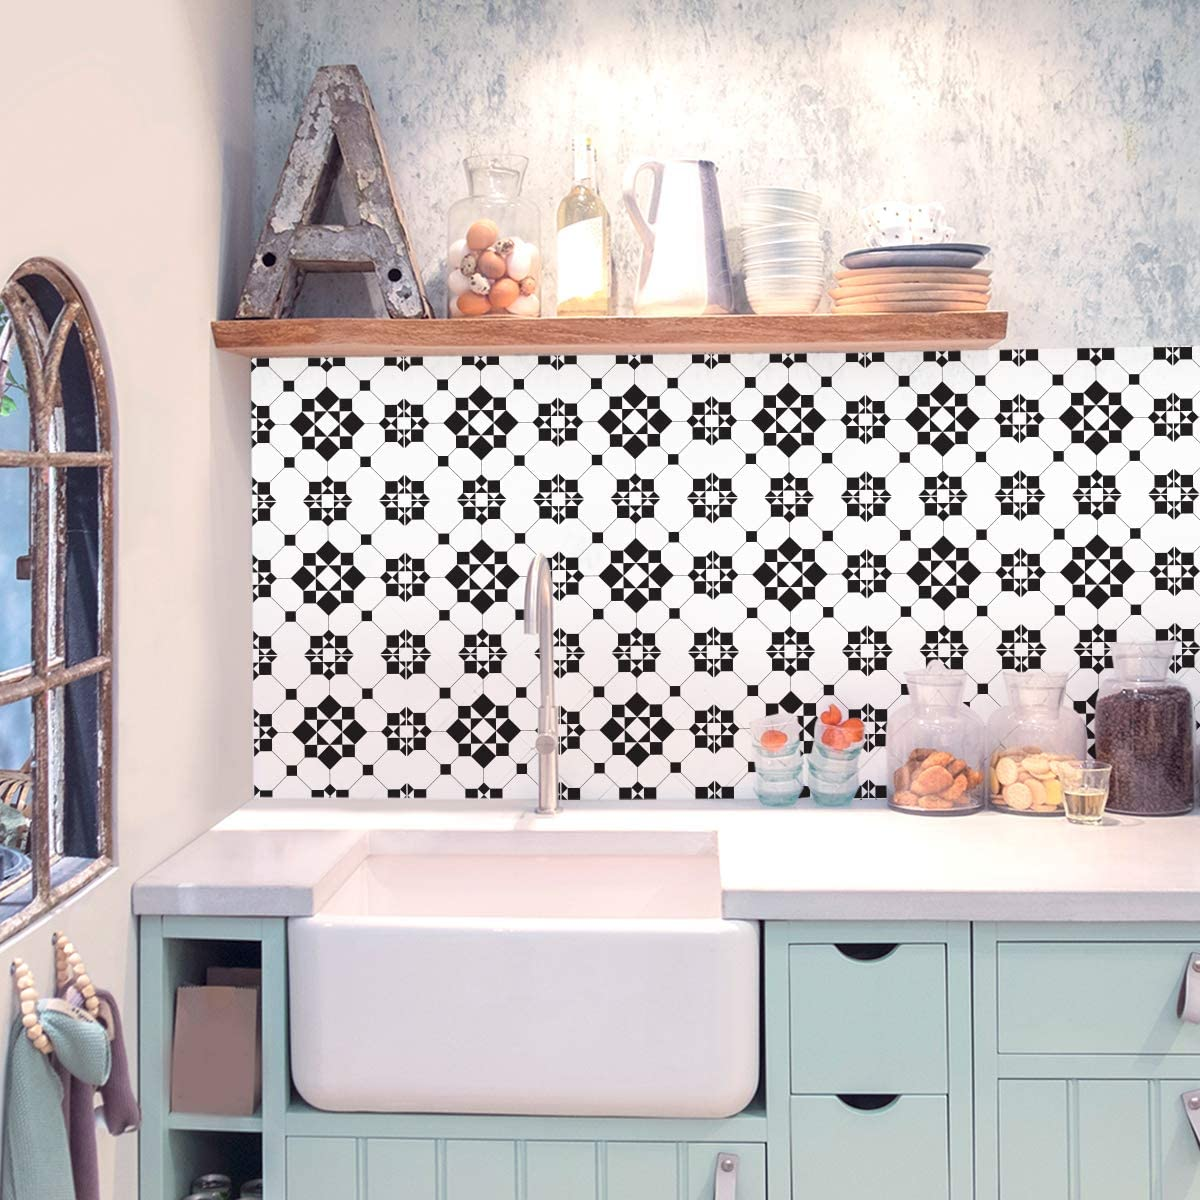 Sirface Victorian Black White Tile Decals Tile Stickers Set For Kitchen And Bathroom Pack Of 24 Different 8x8 Inches 20x20 Cm Amazon Co Uk Kitchen Home